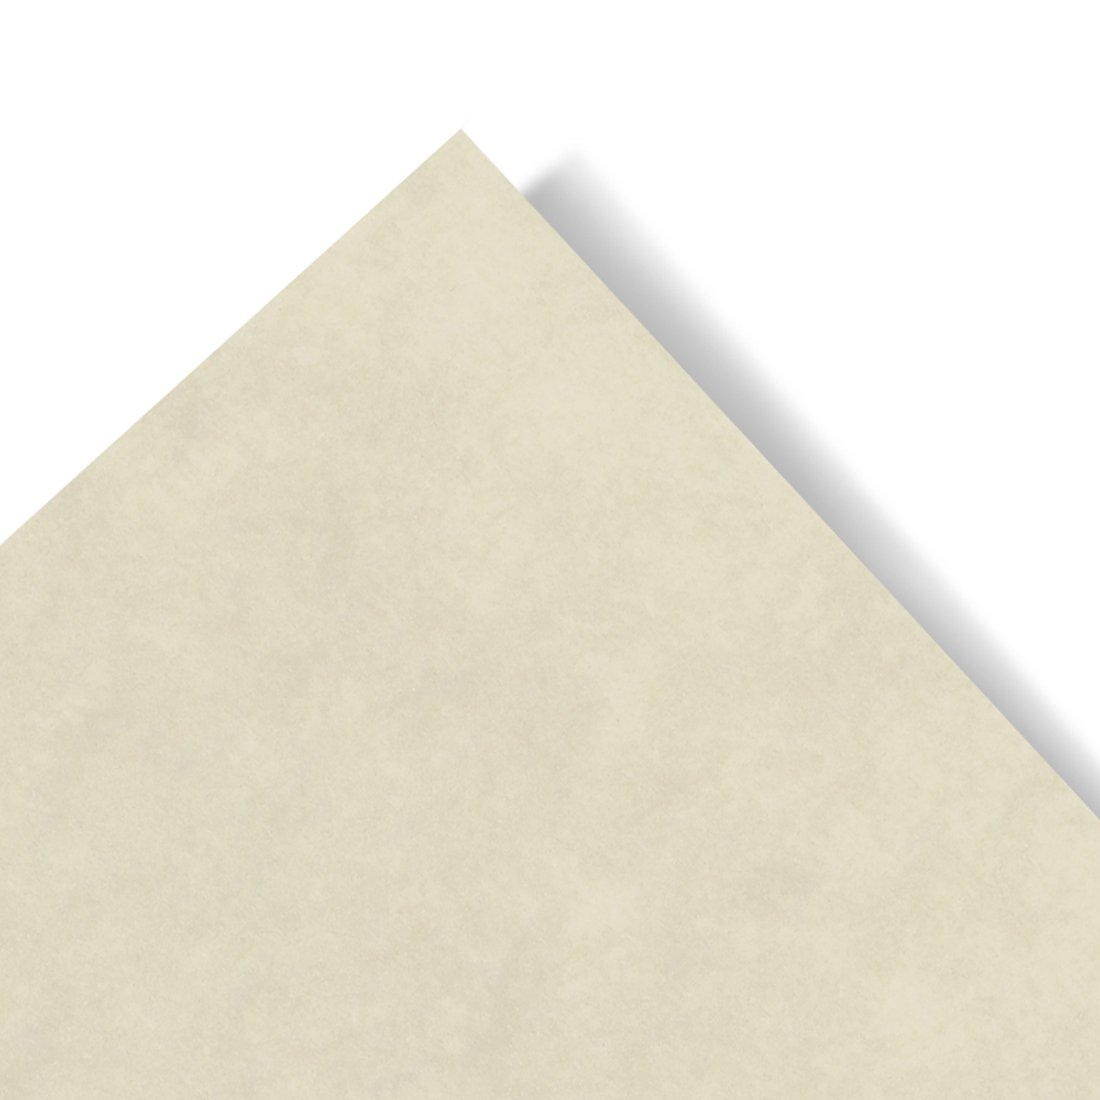 8-1//2 x 11 Hygloss 92353 Products Craft Parchment Paper Sheets 500 Sheets Sky Blue Printer Friendly Made in USA